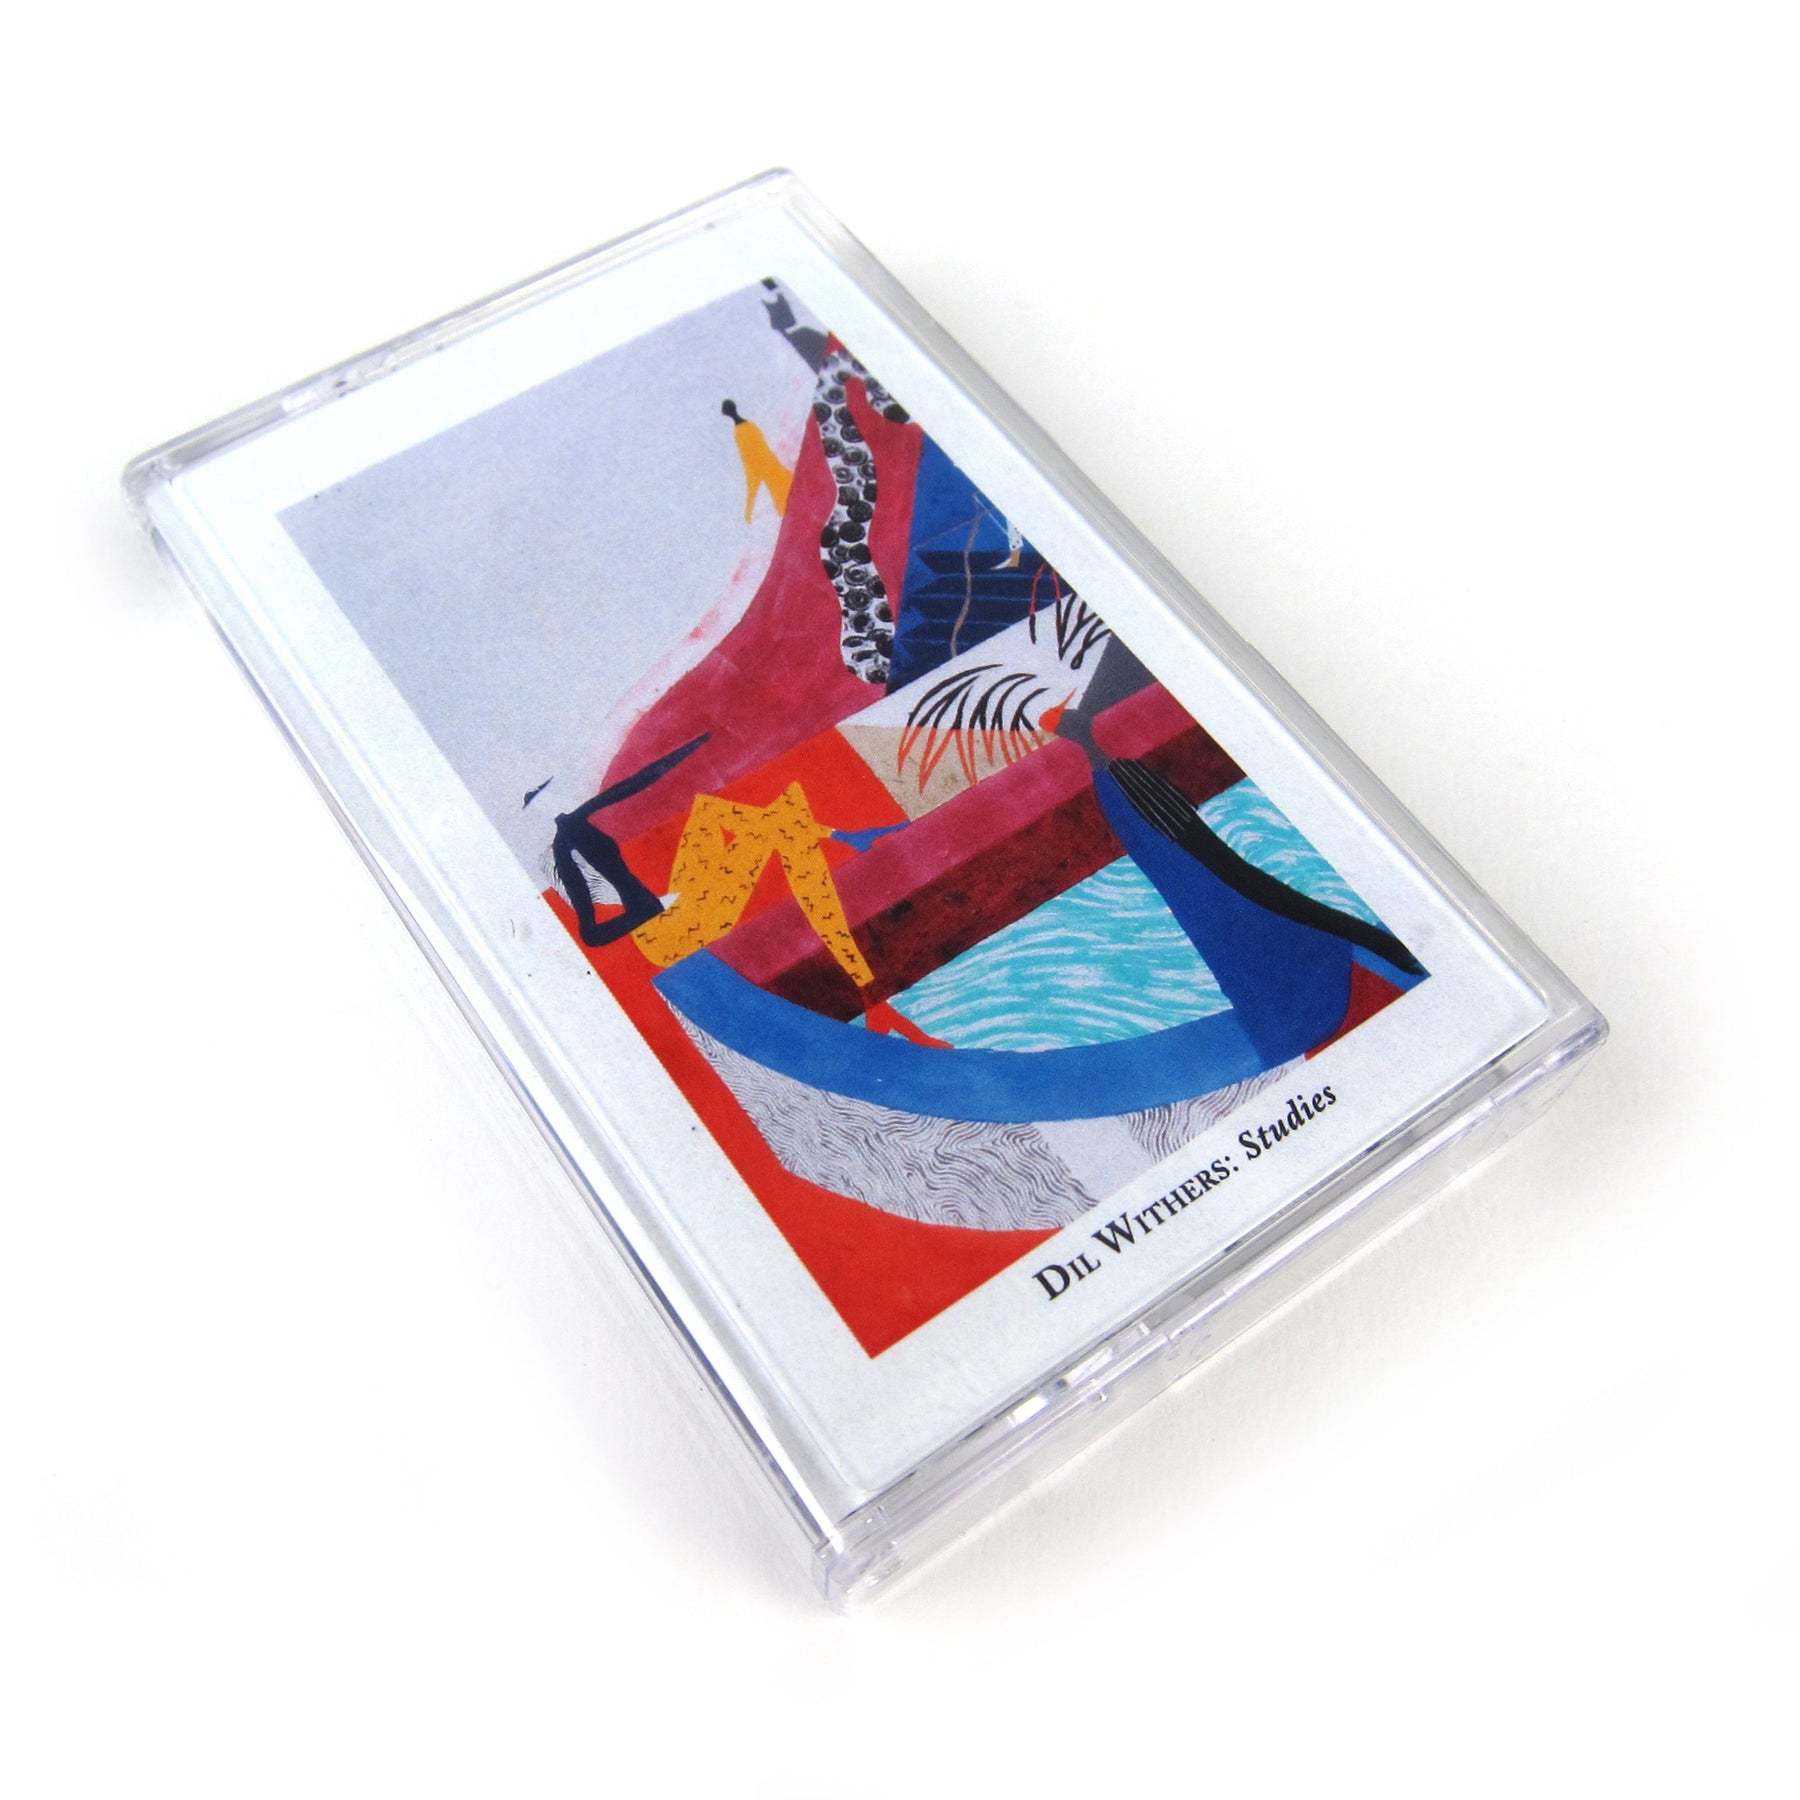 Dil Withers Studies Cassette